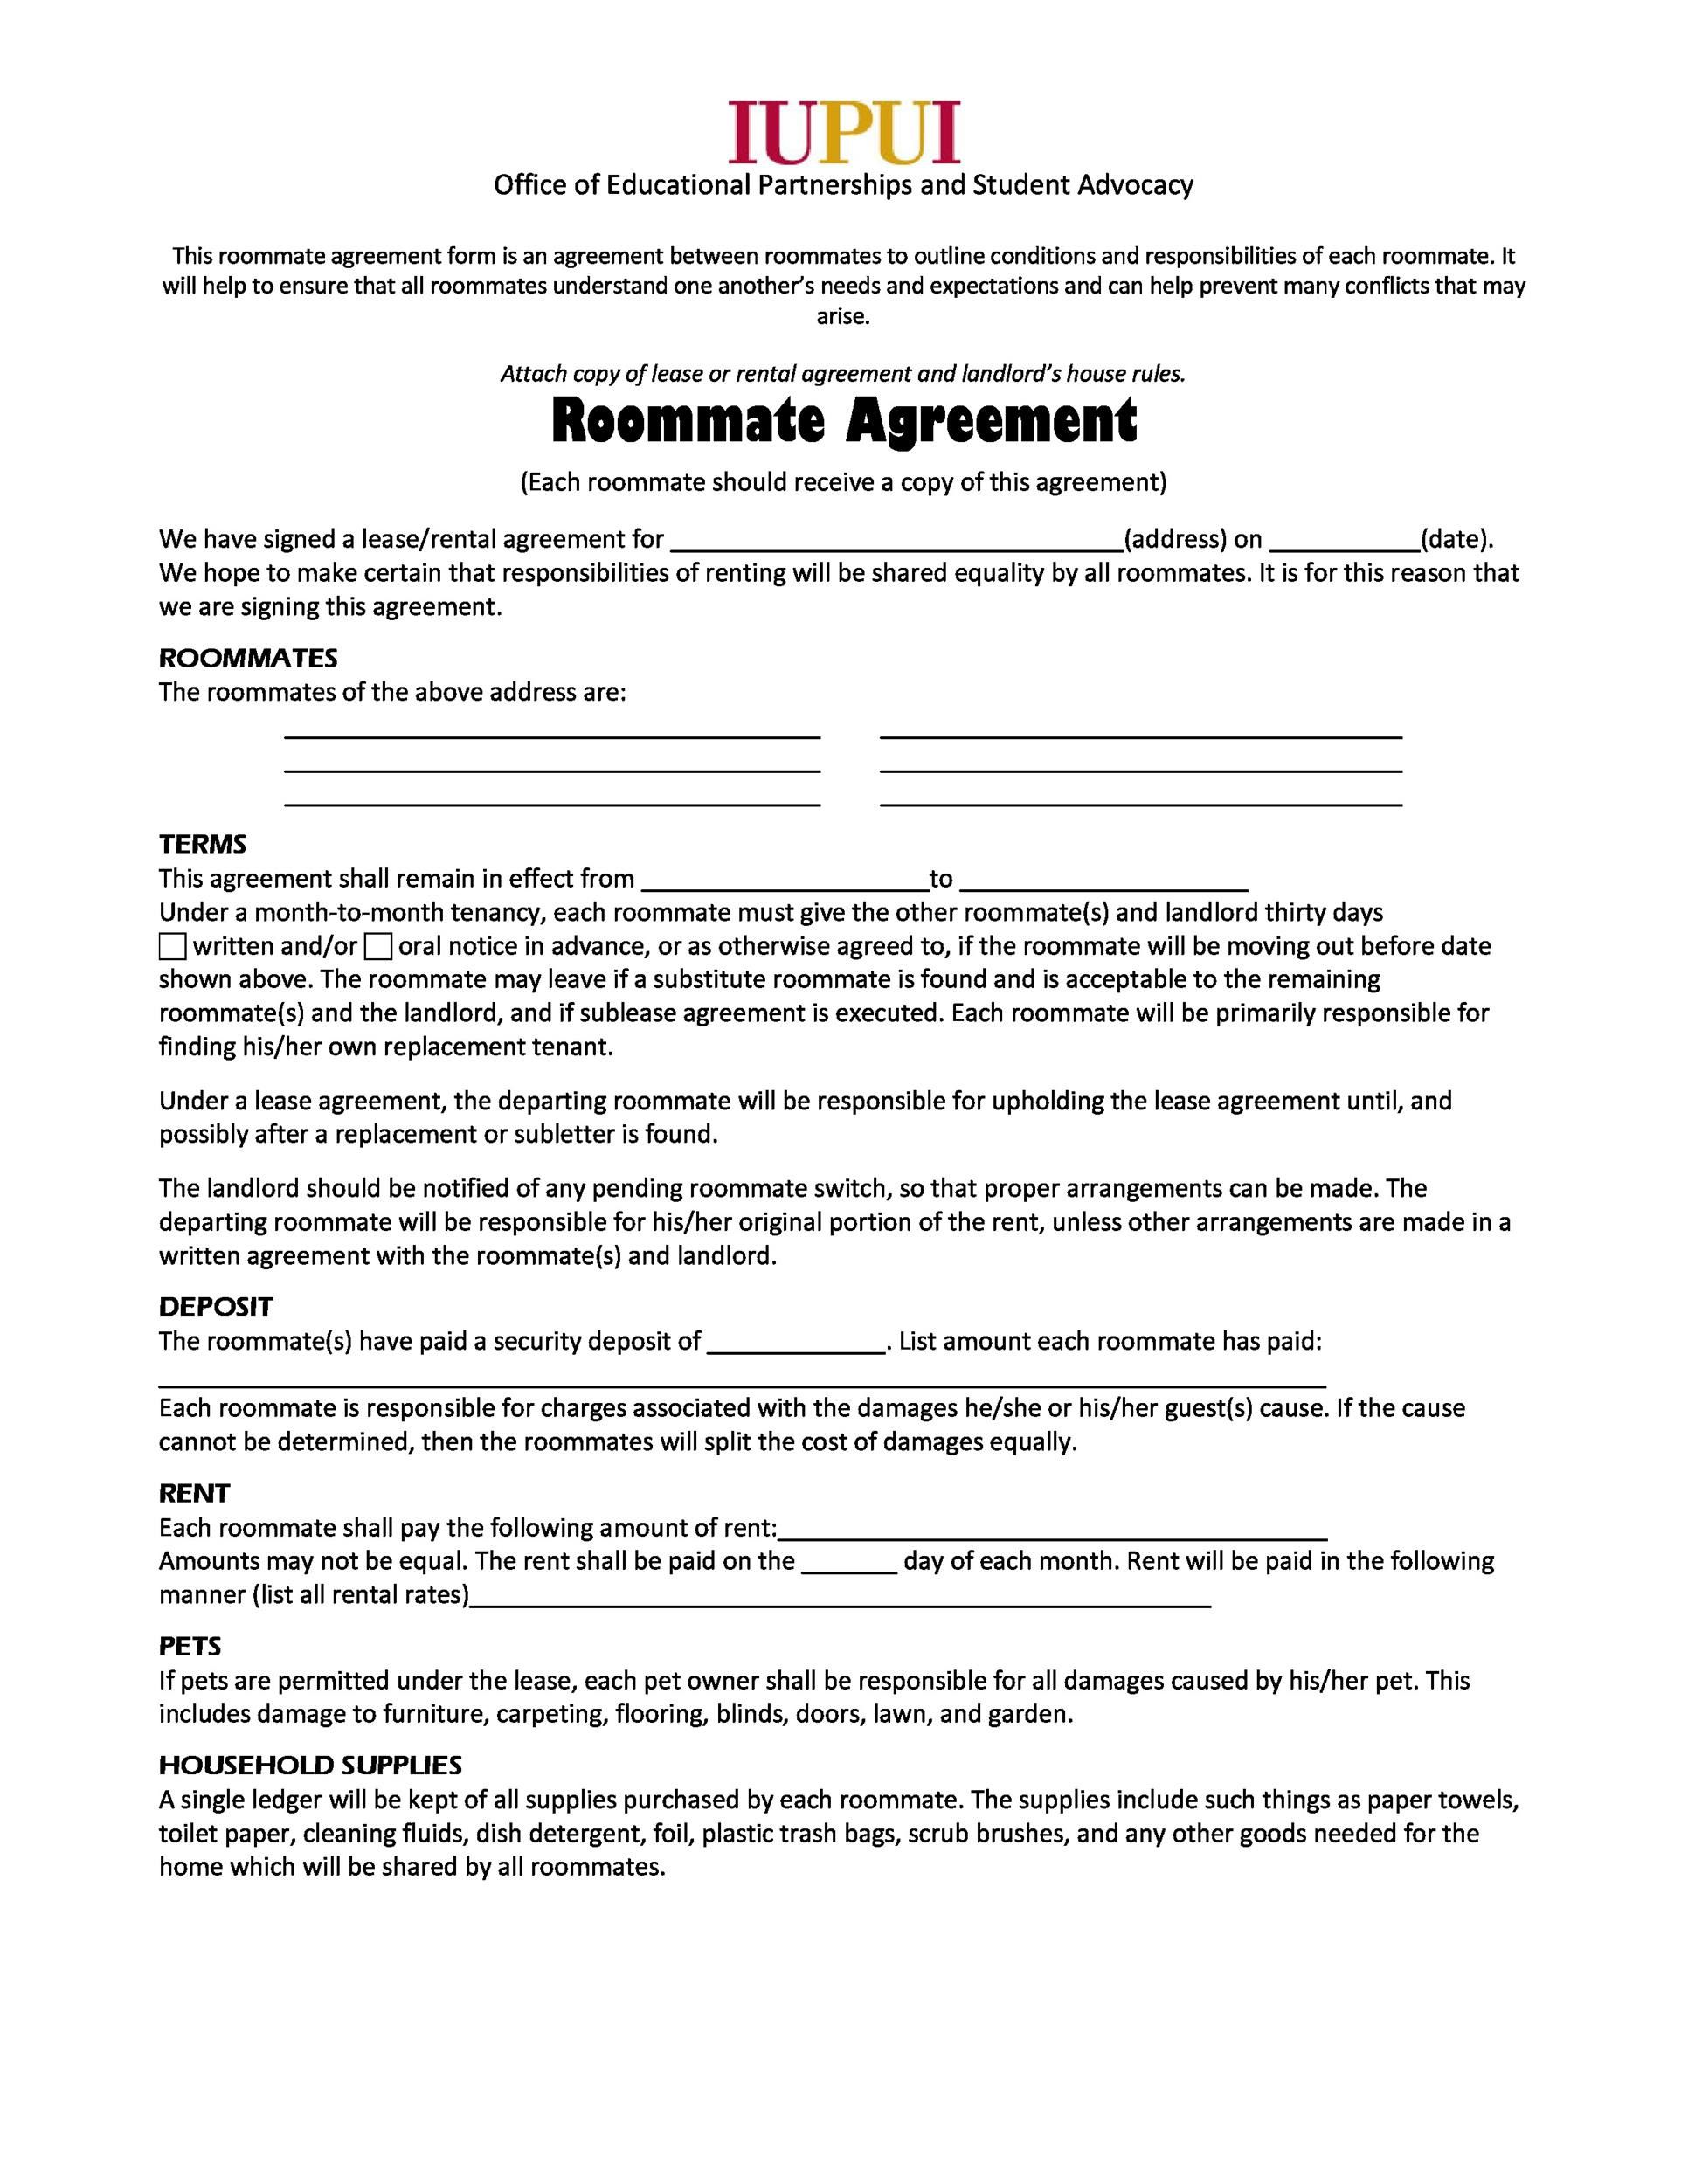 008 Rare Roommate Rental Agreement Template Inspiration  Form Free ContractFull